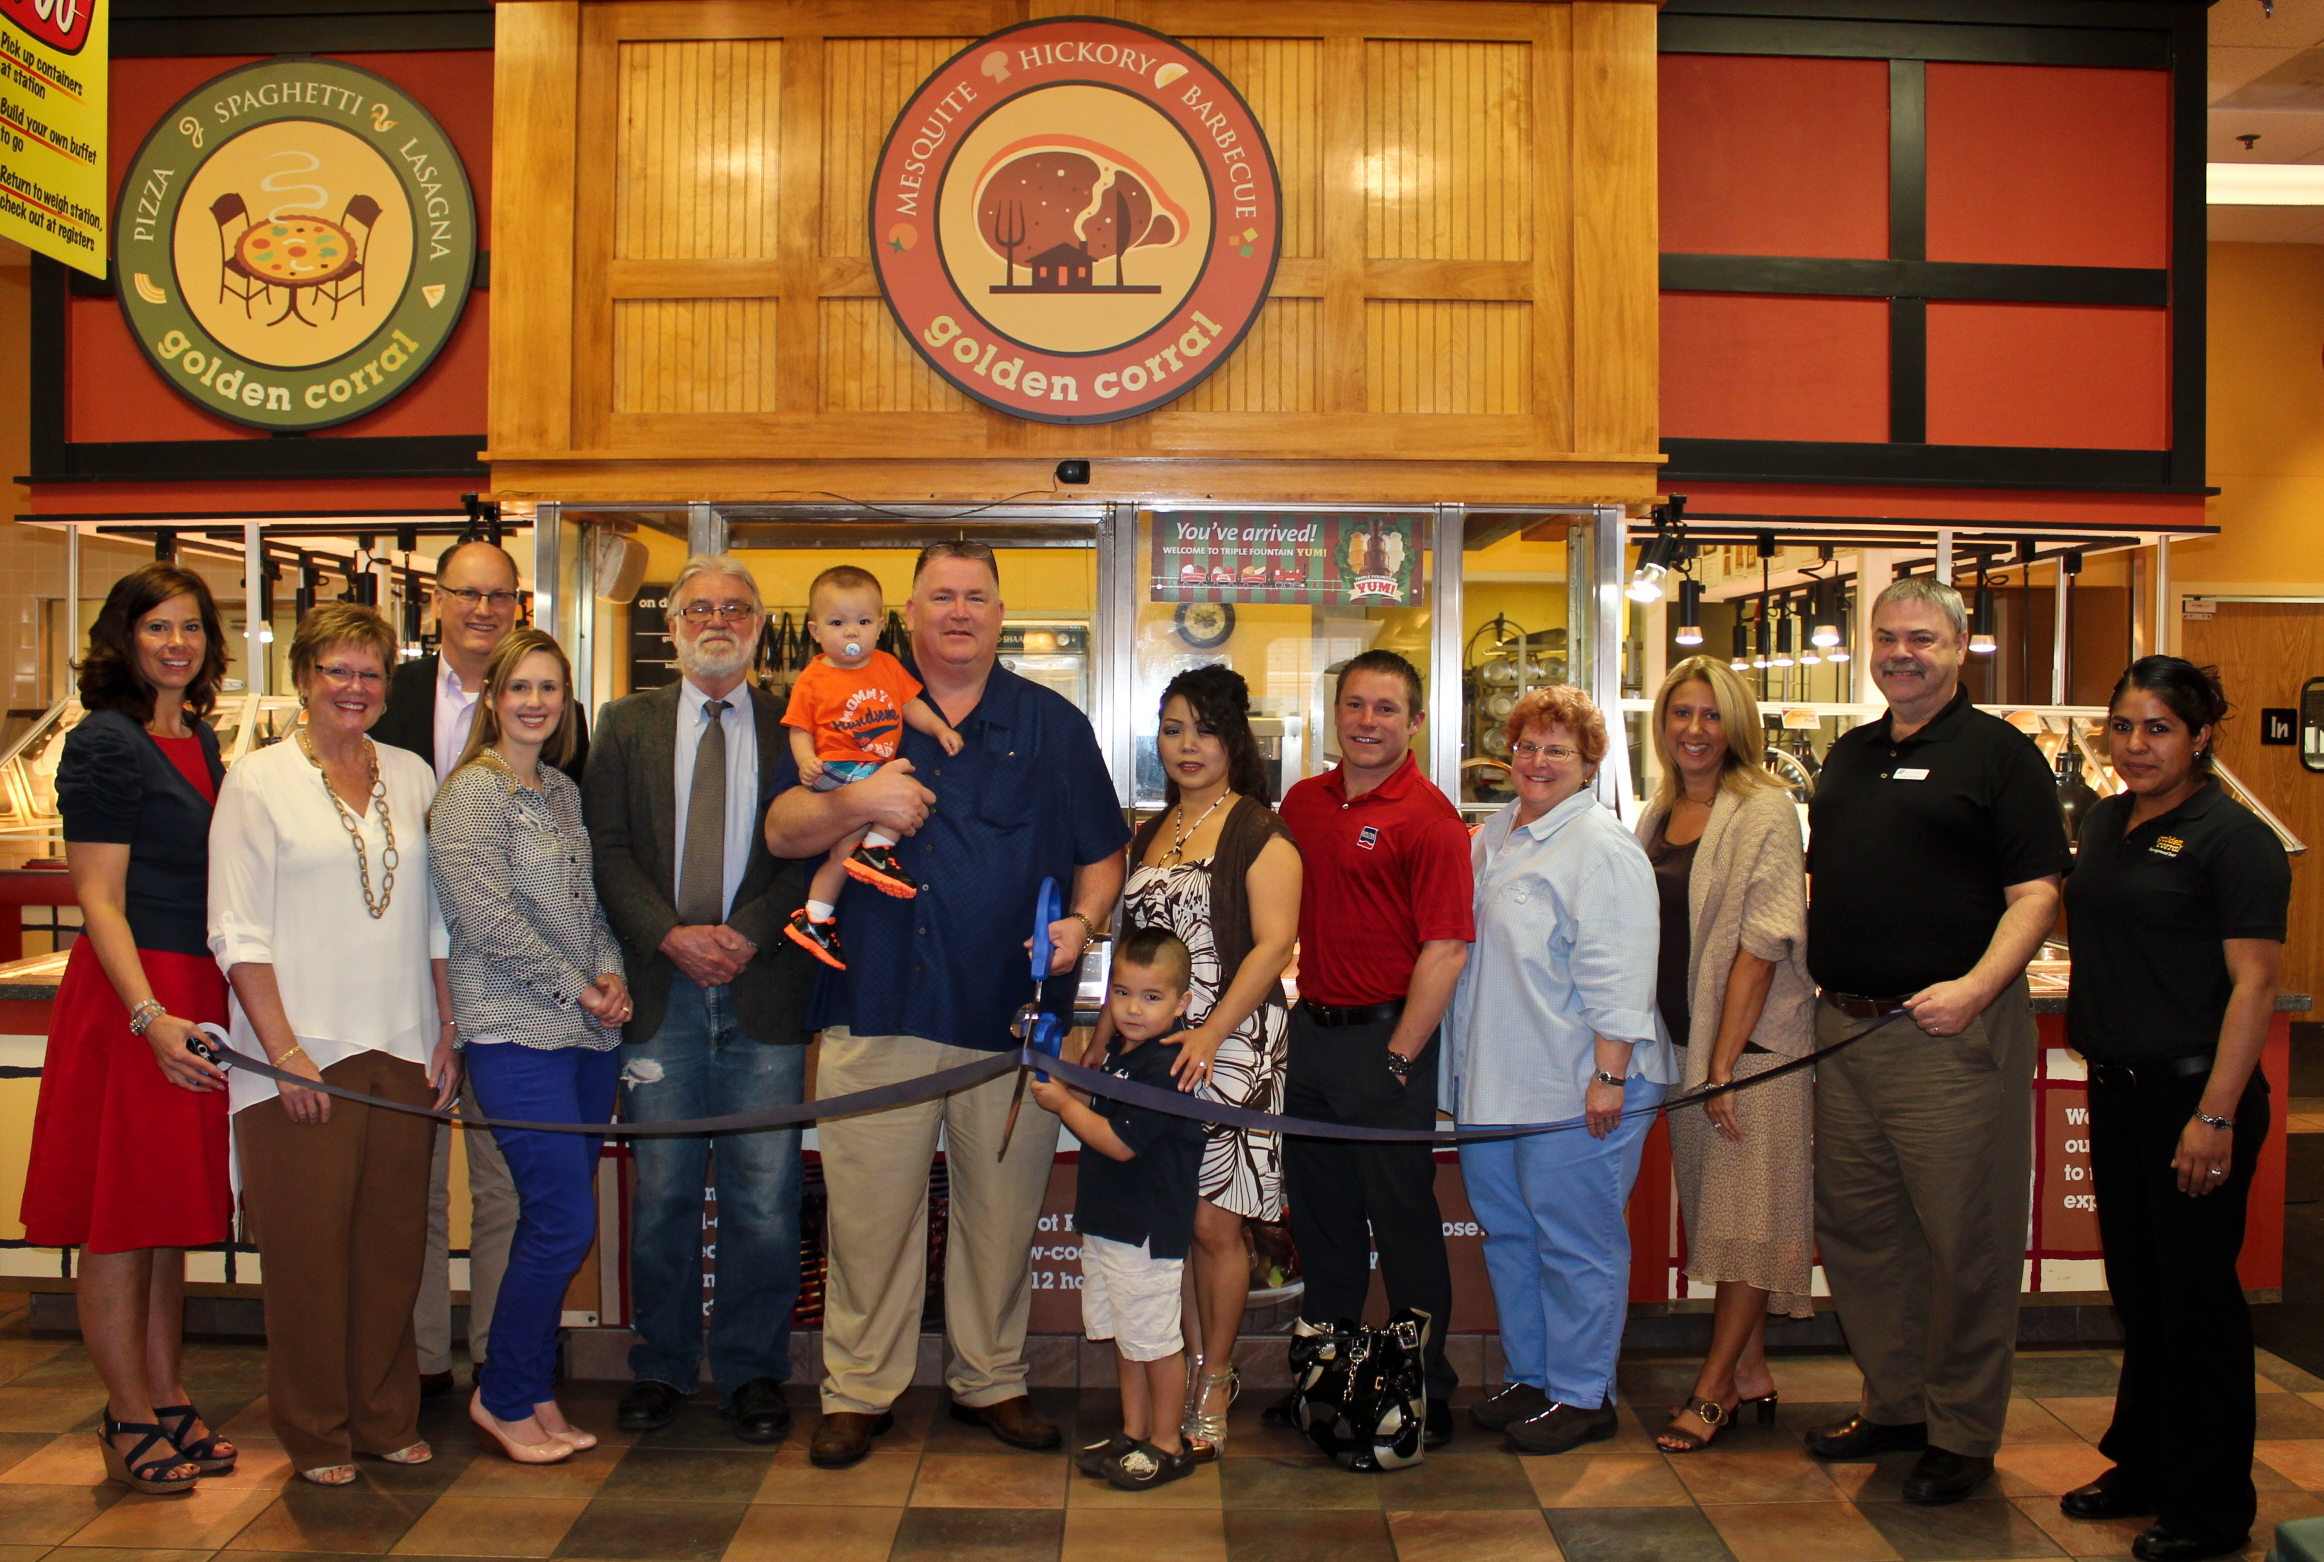 news releases the warsaw kosciusko county chamber of commerce conducted a ribbon cutting at golden corral located at to view the full golden corral press release of the